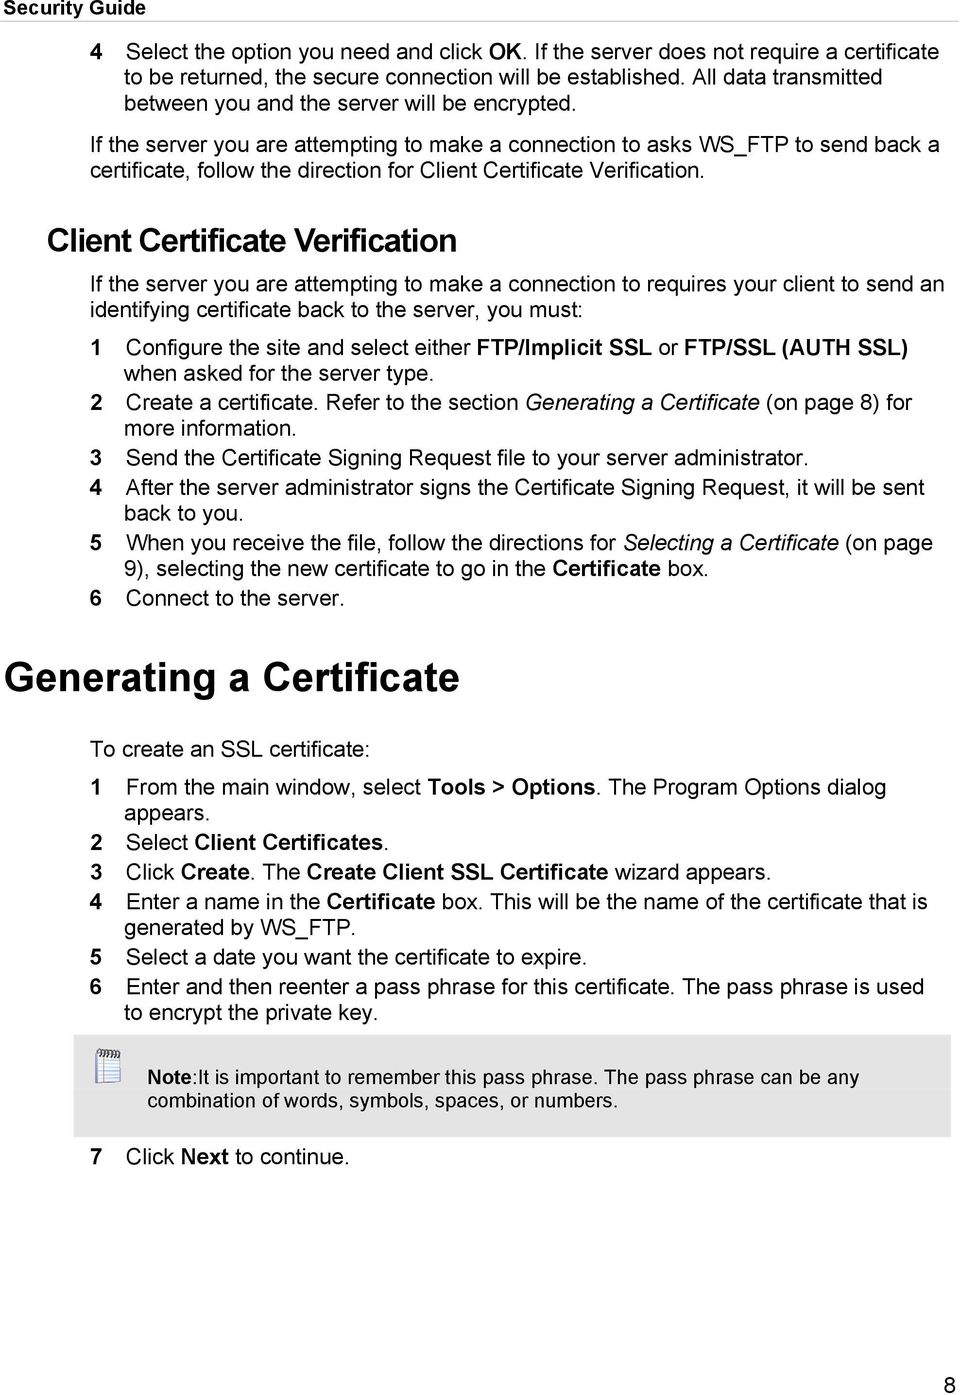 If the server you are attempting to make a connection to asks WS_FTP to send back a certificate, follow the direction for Client Certificate Verification.